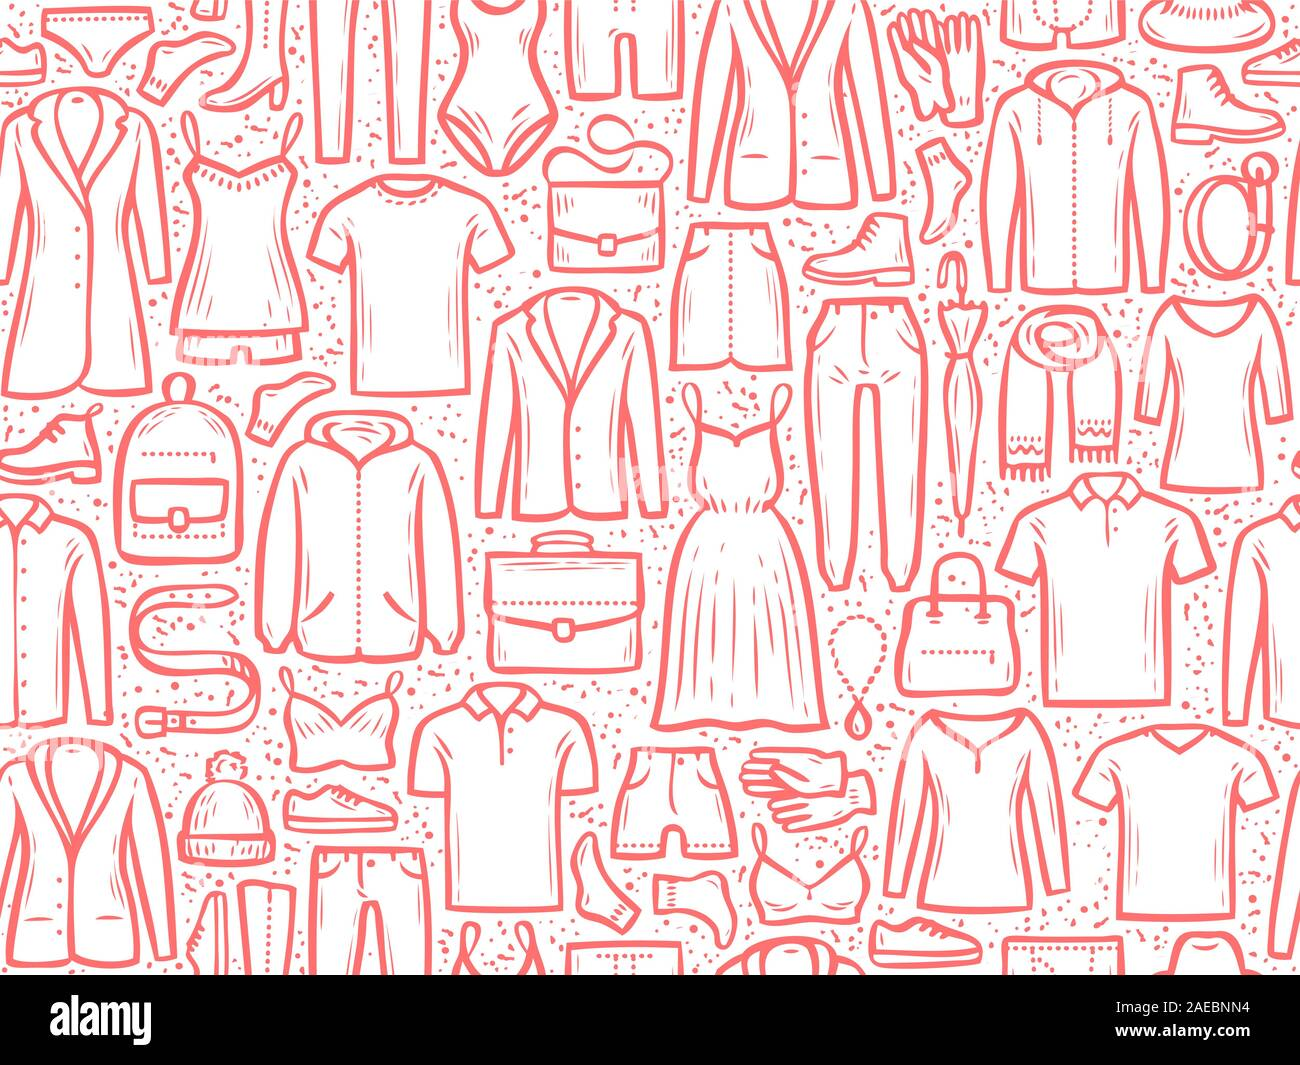 Fashion Background Seamless Clothes Pattern Vector Illustration Stock Vector Image Art Alamy